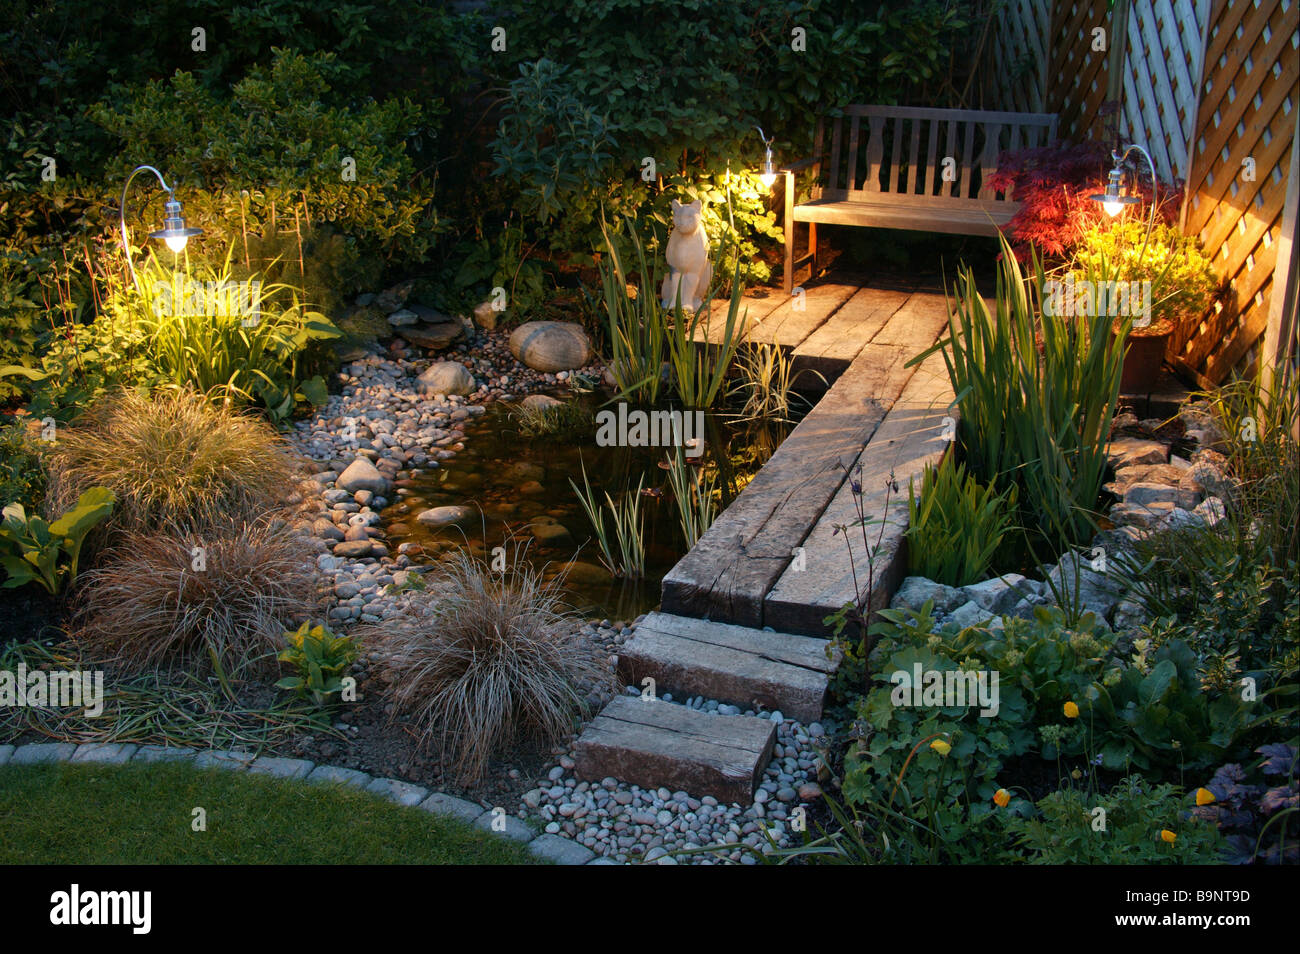 garden pond and water feature stock photos garden pond and water